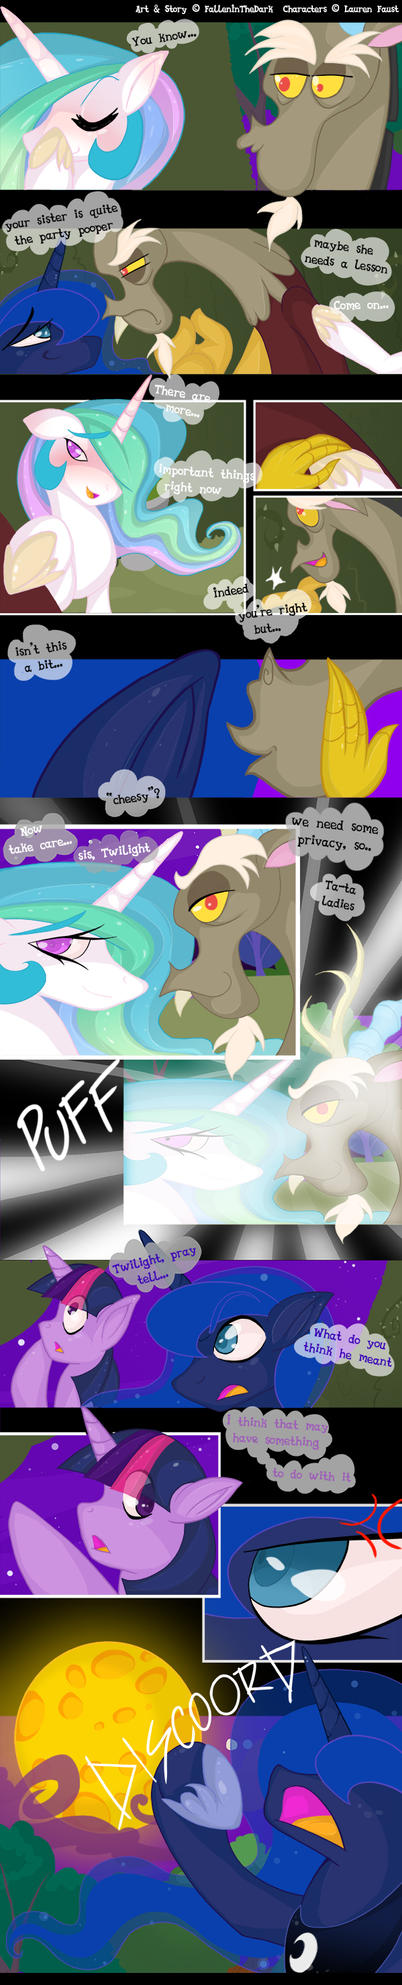 Twists and Turns - Part 8 by FallenInTheDark